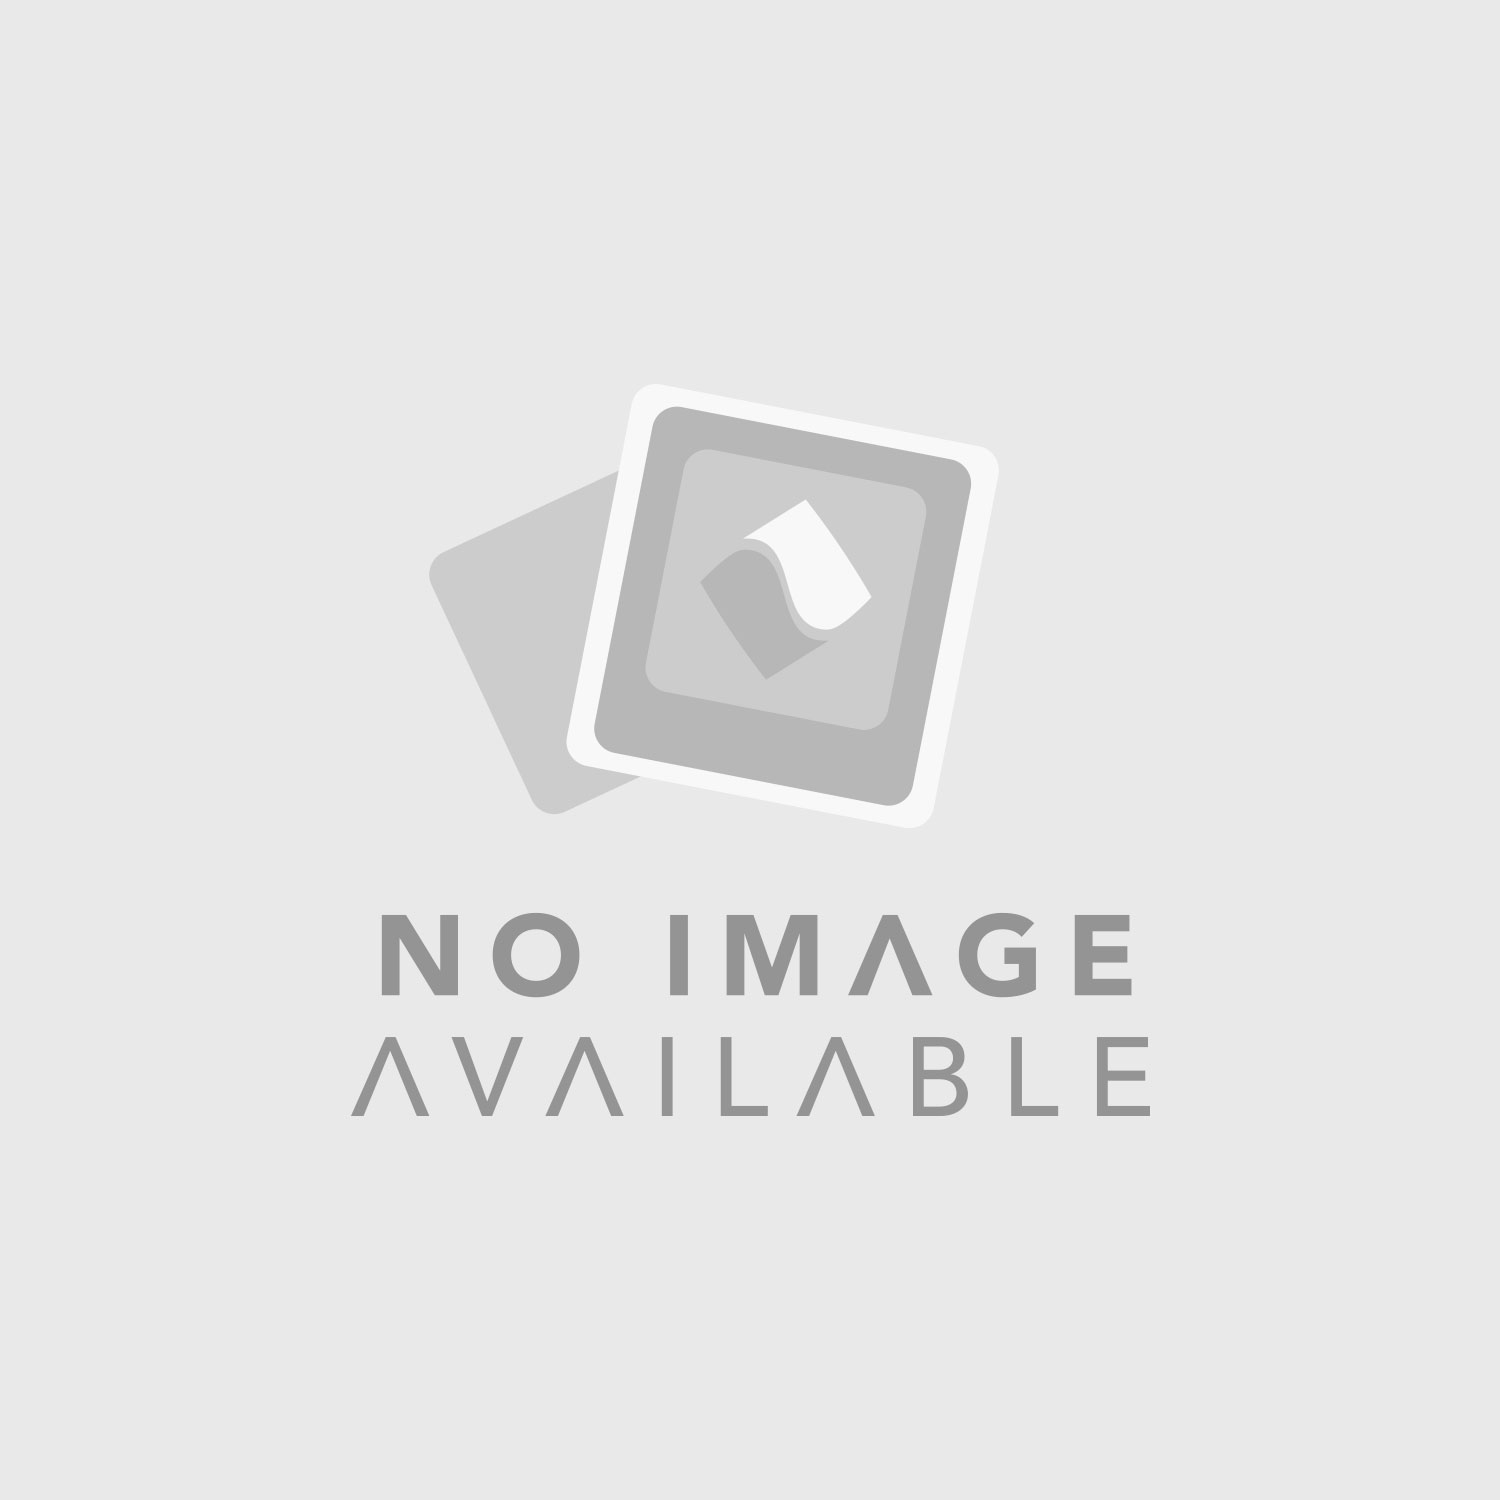 Audio-Technica ATW-2129bI Wireless Lavalier Microphone System (487.125 to 506.500 MHz)